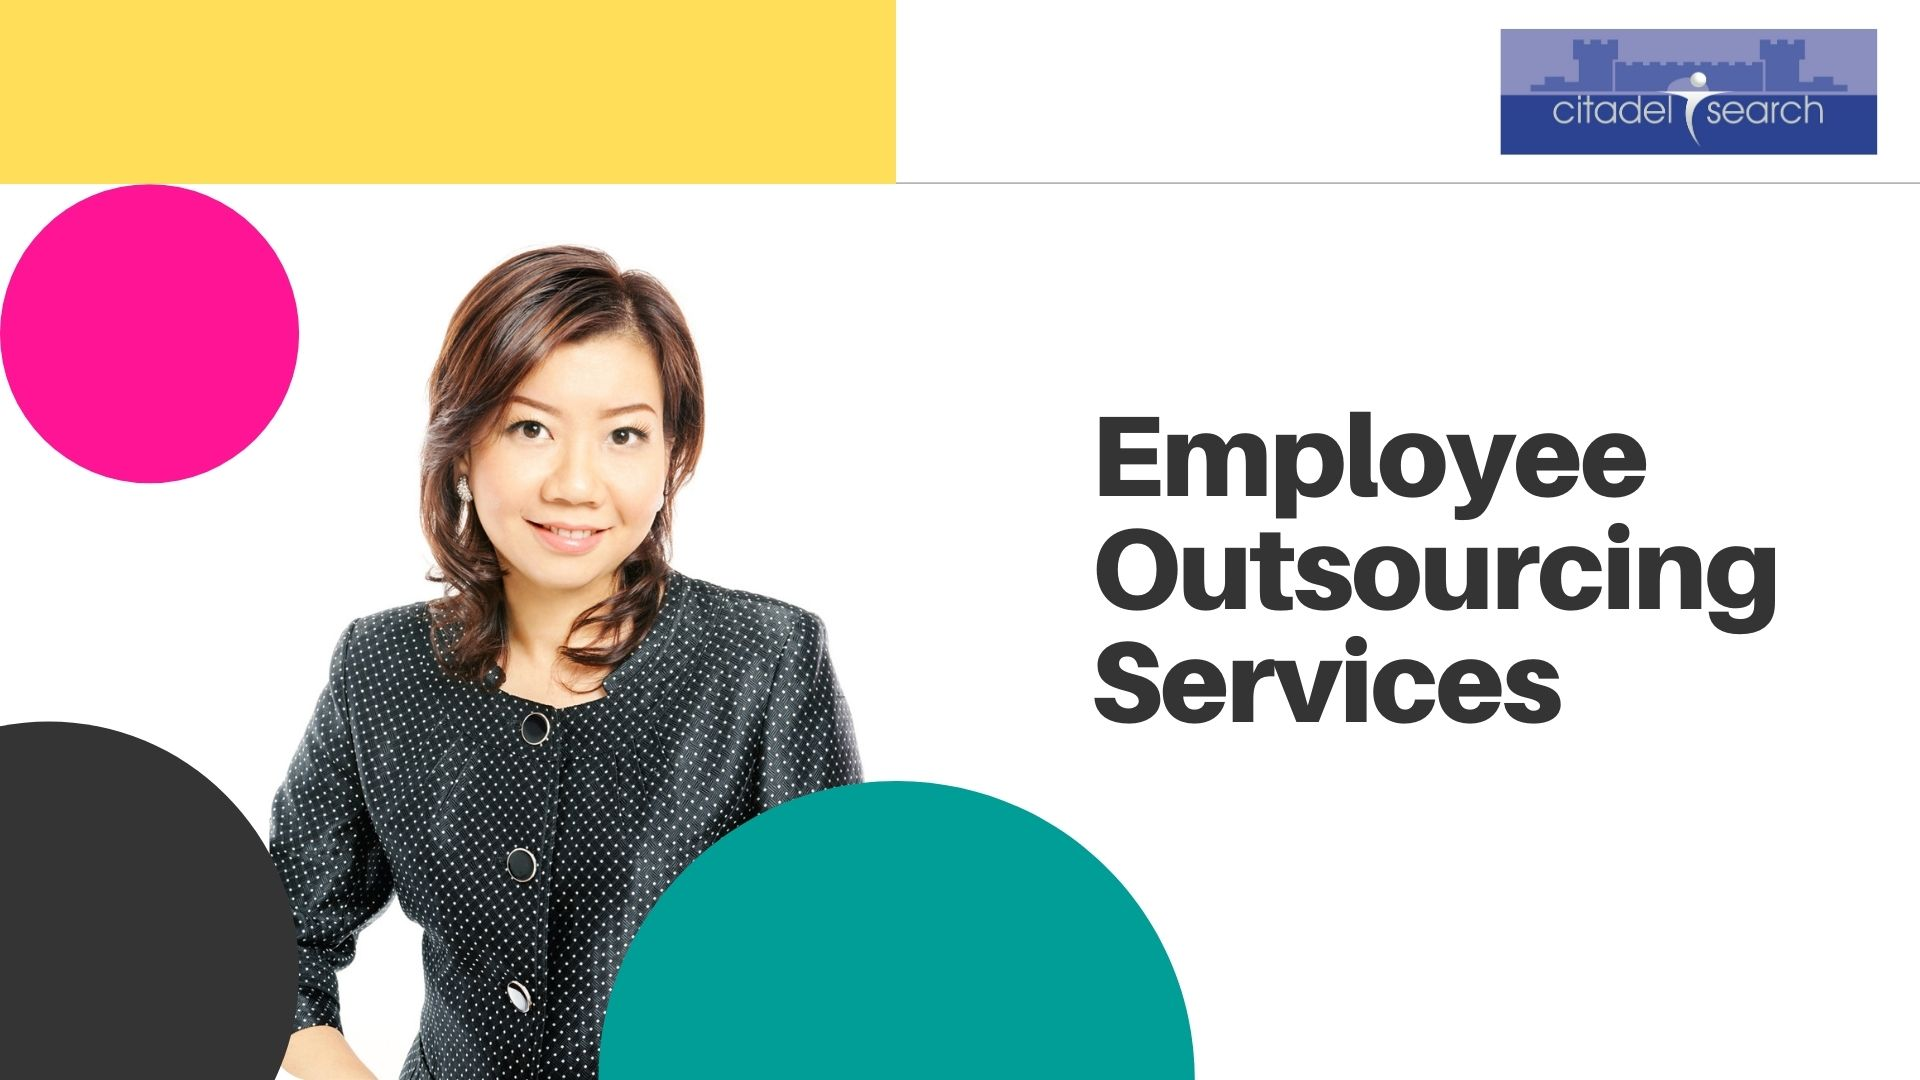 Citadel Search Video: Employee Outsourcing Services